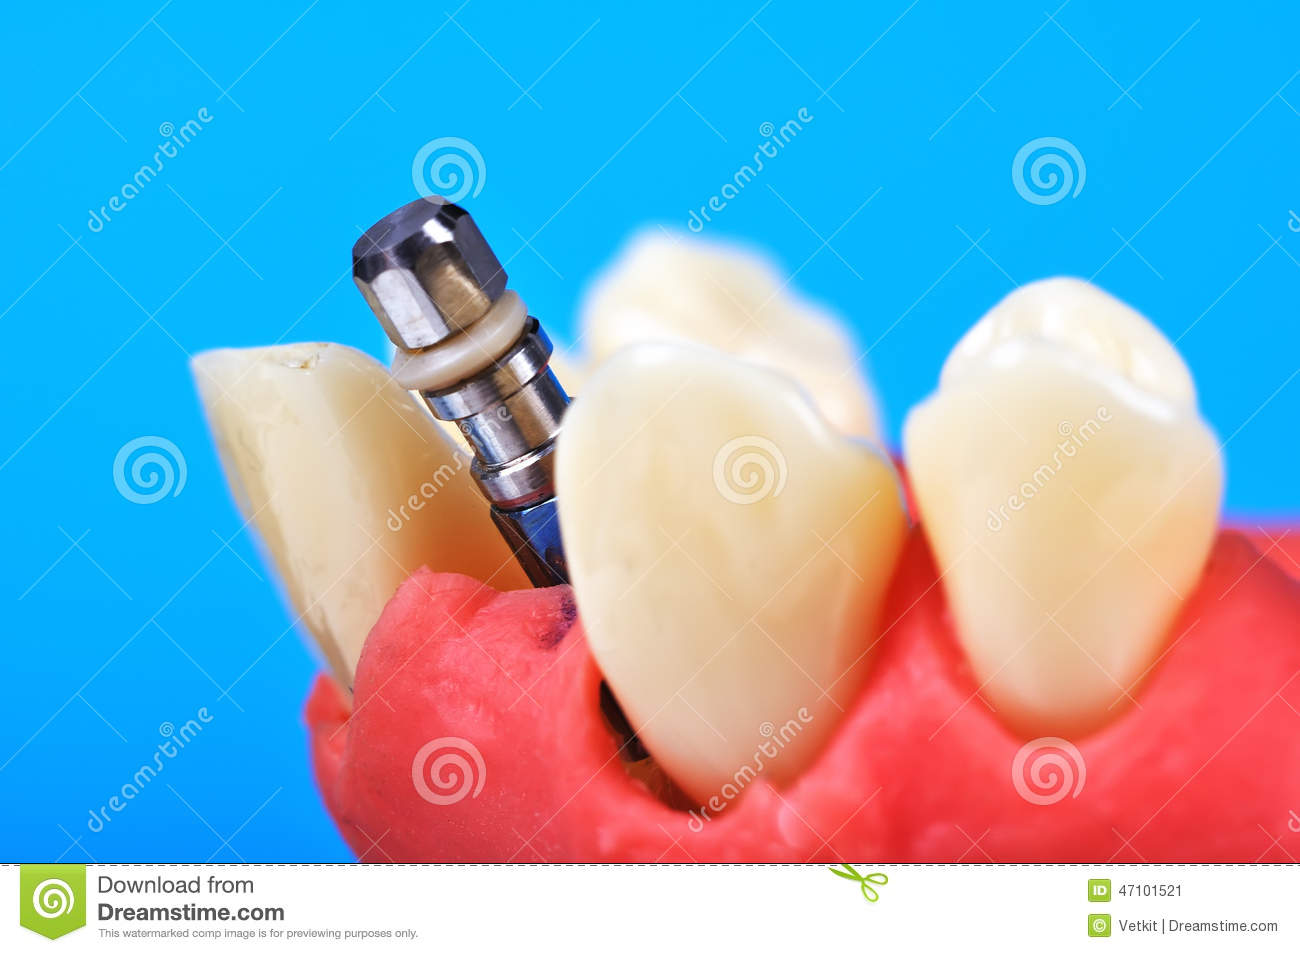 Implant dentaire de dent